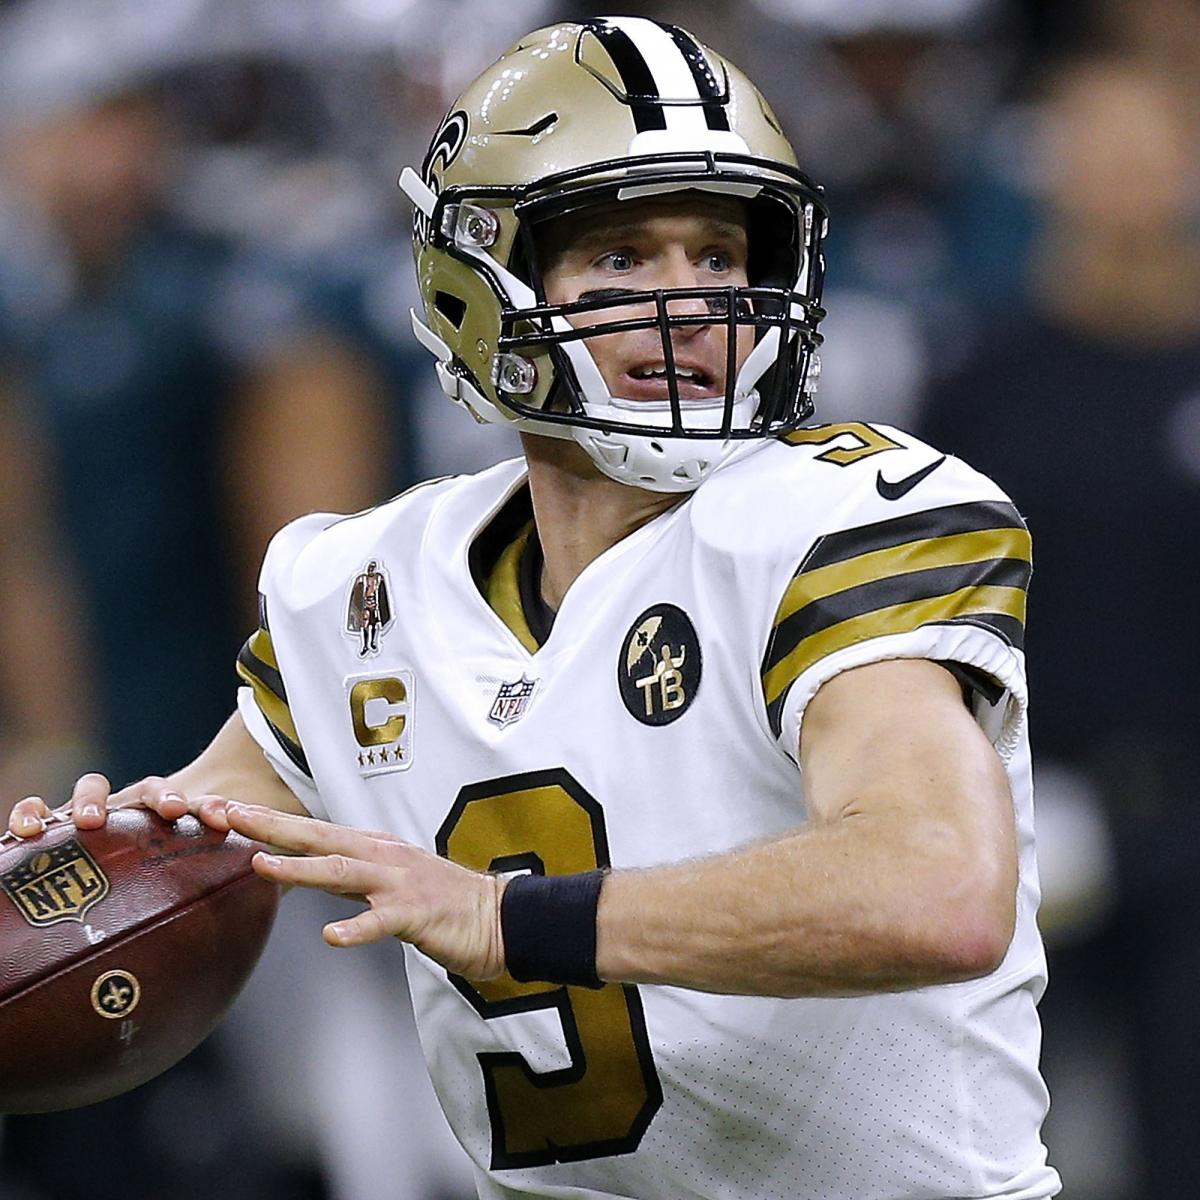 Saints Tickets 2019 Get 5 Back On Saints Game Tickets: Drew Brees, Patrick Mahomes Lead All Players In 1st 2019